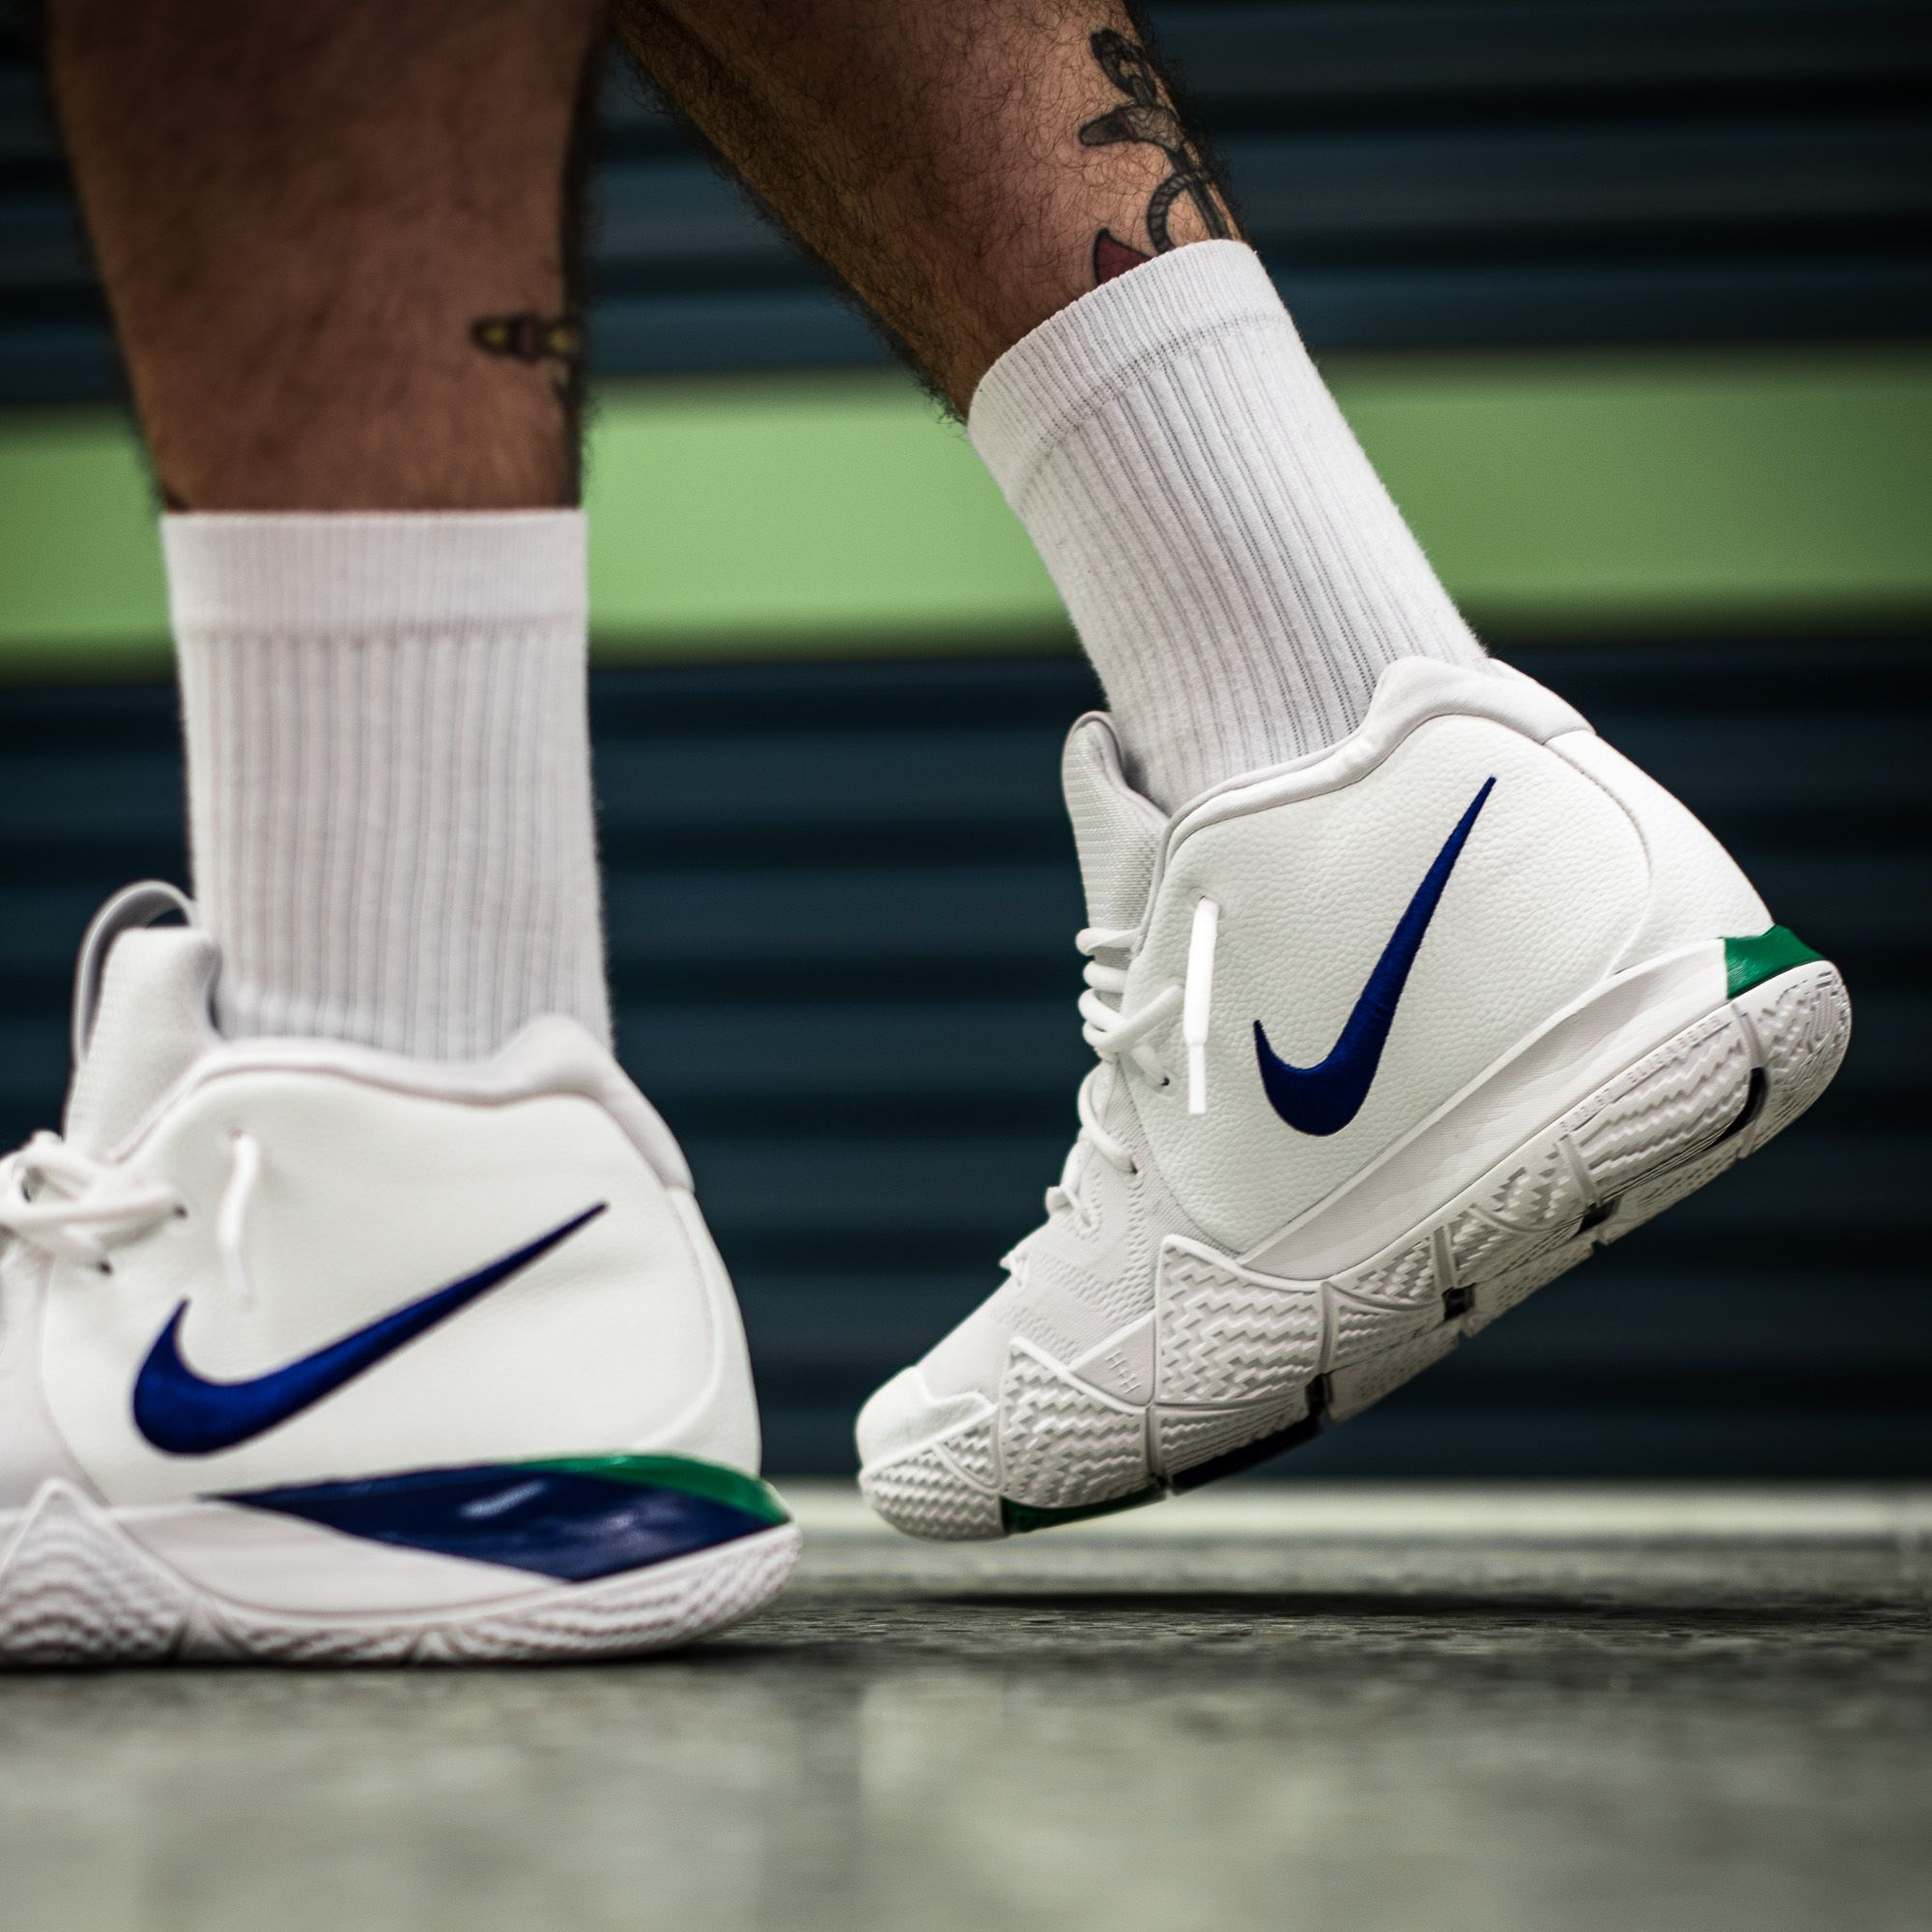 official photos fa65e ae518 Dominate the game like Uncle Drew himself with a pair of those Nike Kyrie 4